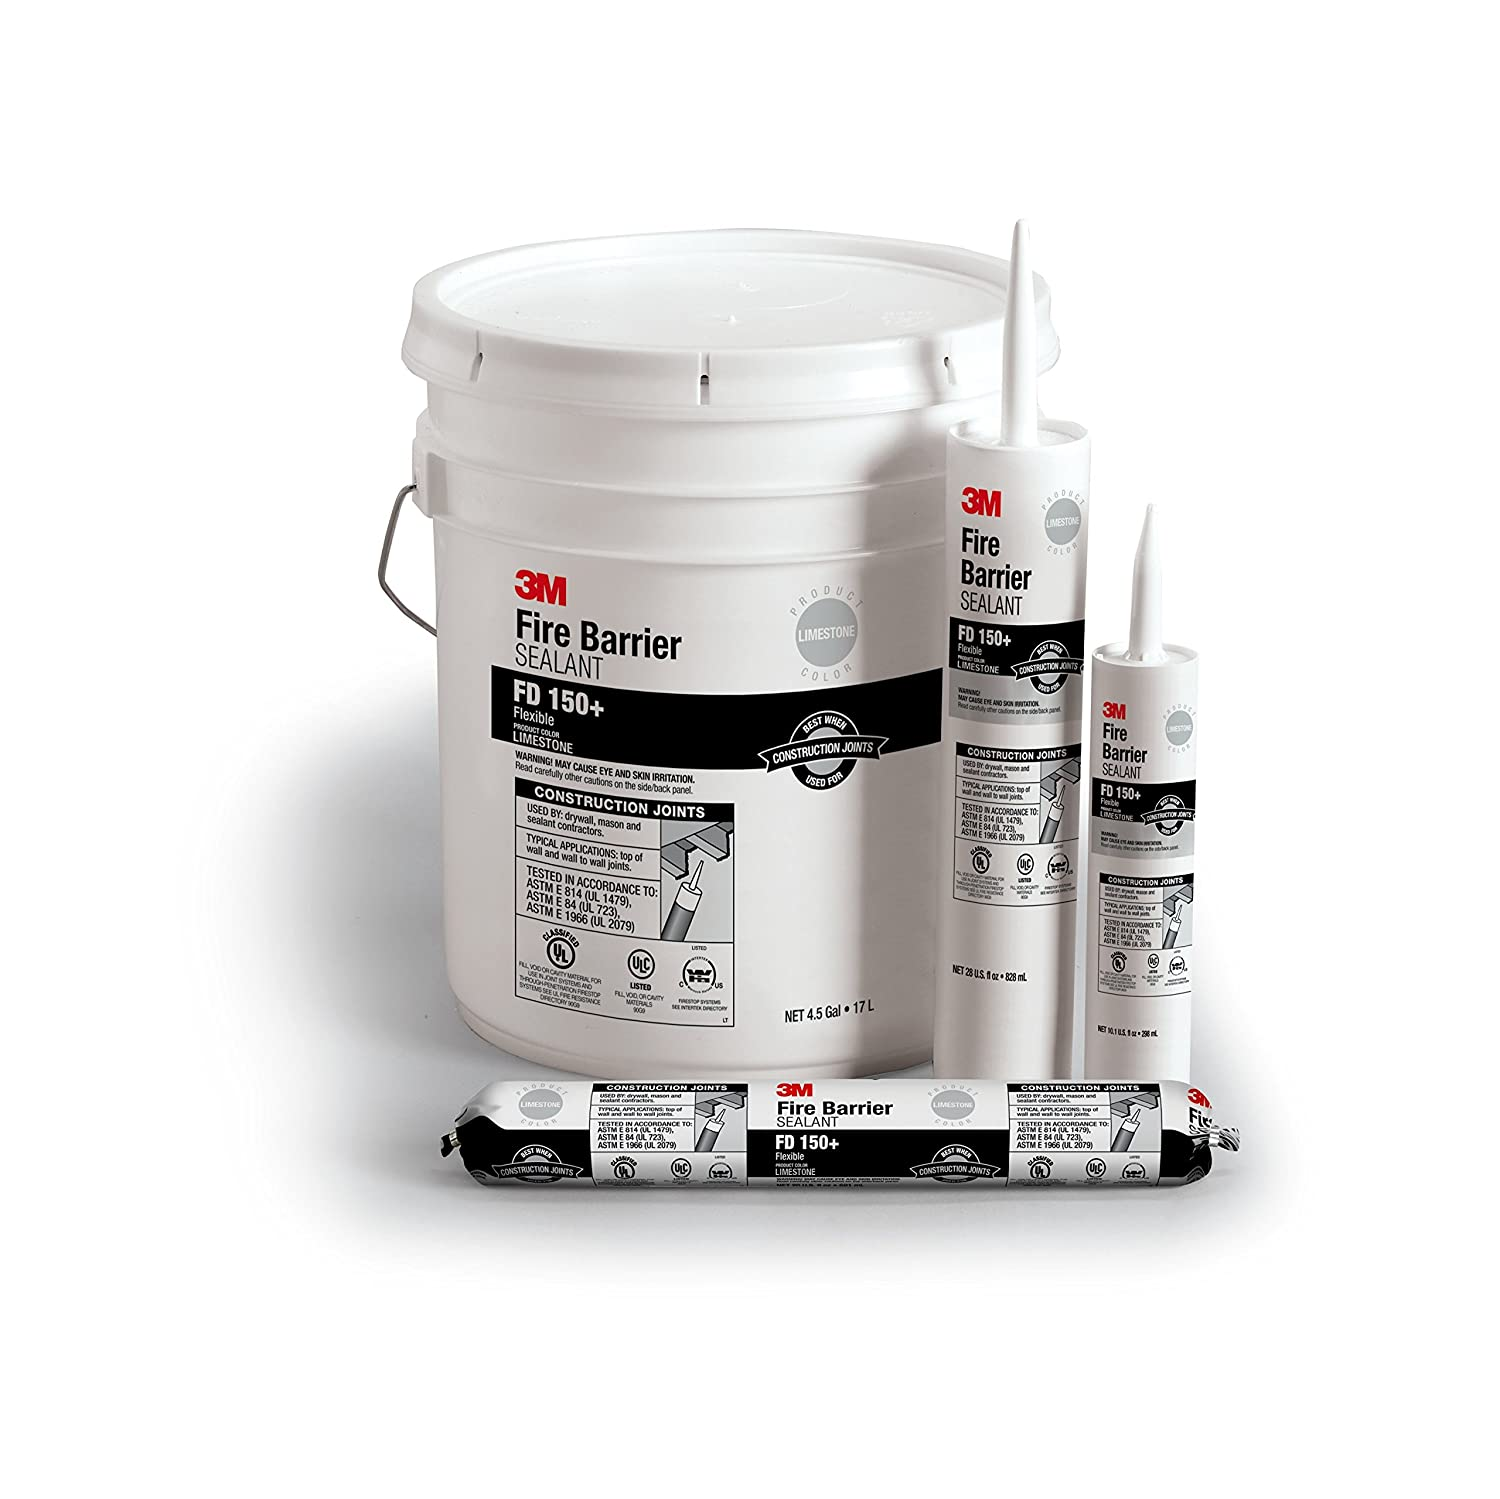 Image of Home Improvements 3M 16565-case Fire Barrier Sealant FD 150+ Limestone, Pail, 1/case, 4.5 gal